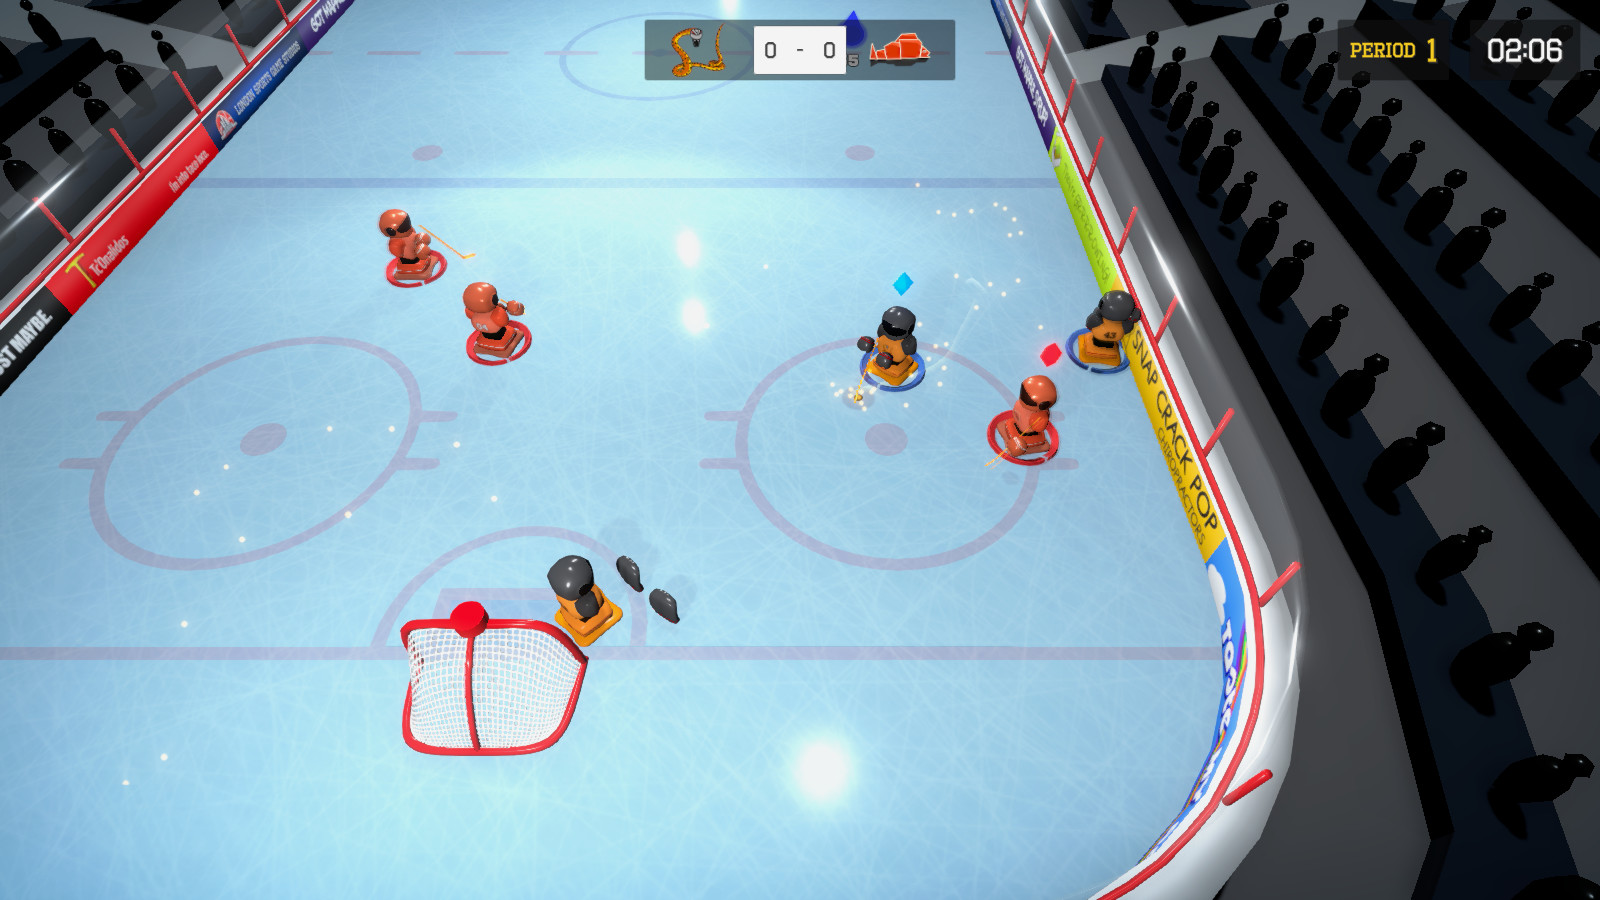 3 on 3 Super Robot Hockey Free Download